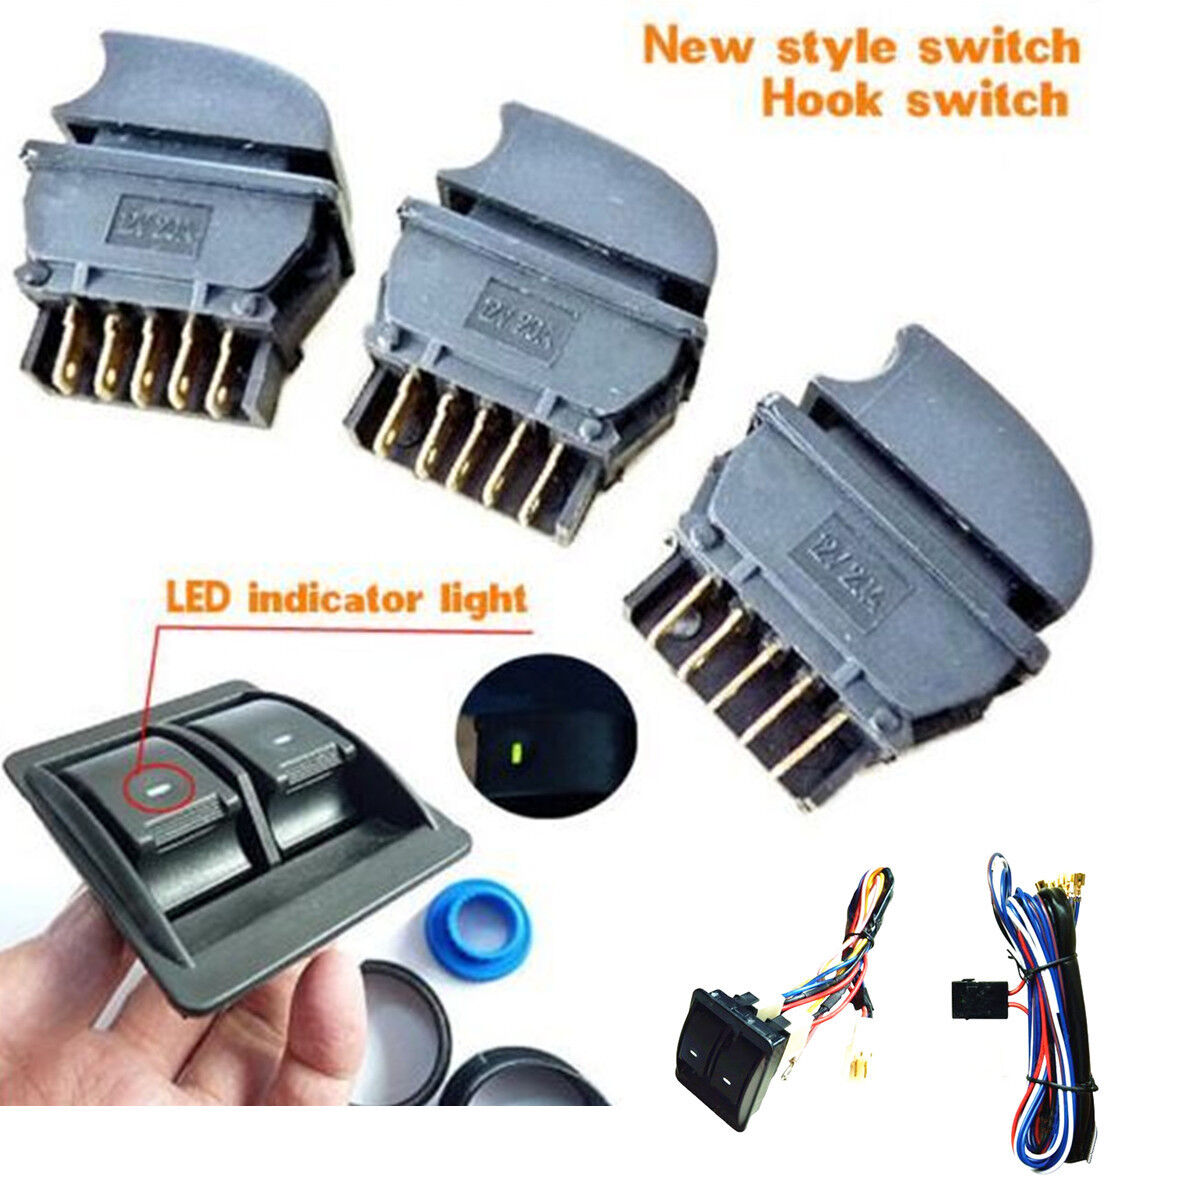 s l1600 12v car power window switch with wire harness universal kits universal 12 volt wiring harness at soozxer.org